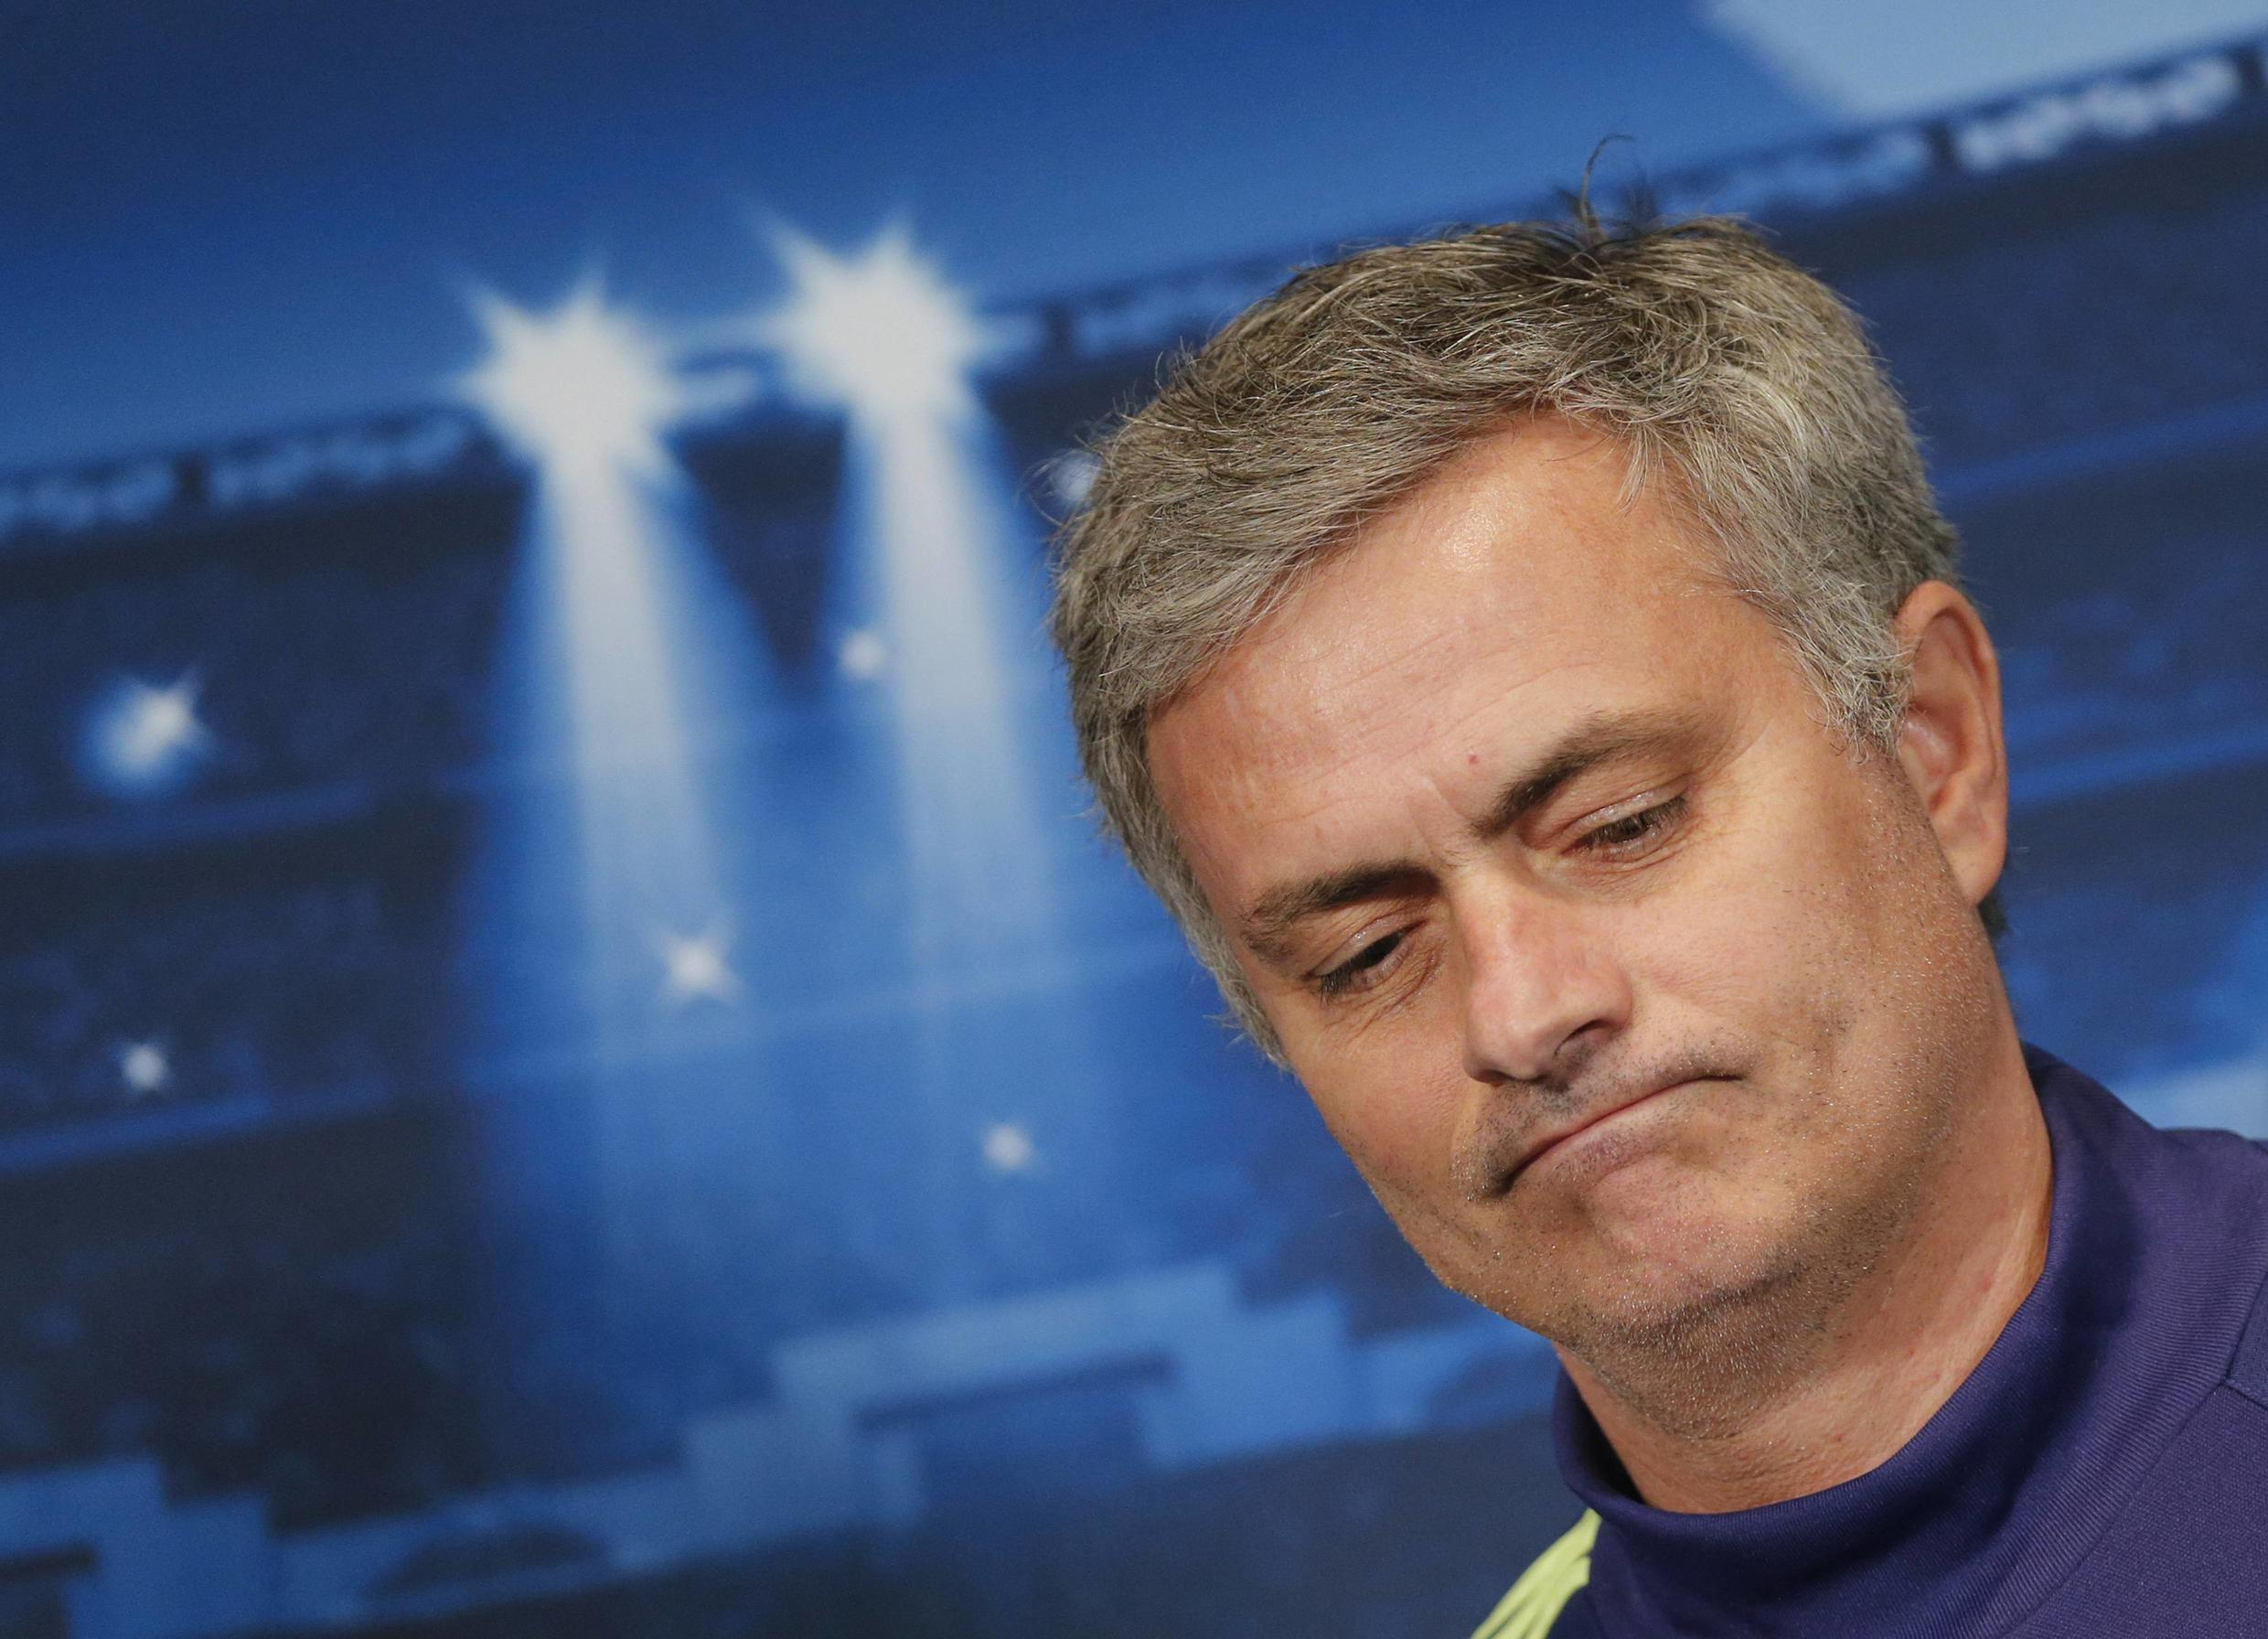 Jose Mourinho will win his third English title with Chelsea if they beat Crystal Palace on 3 May